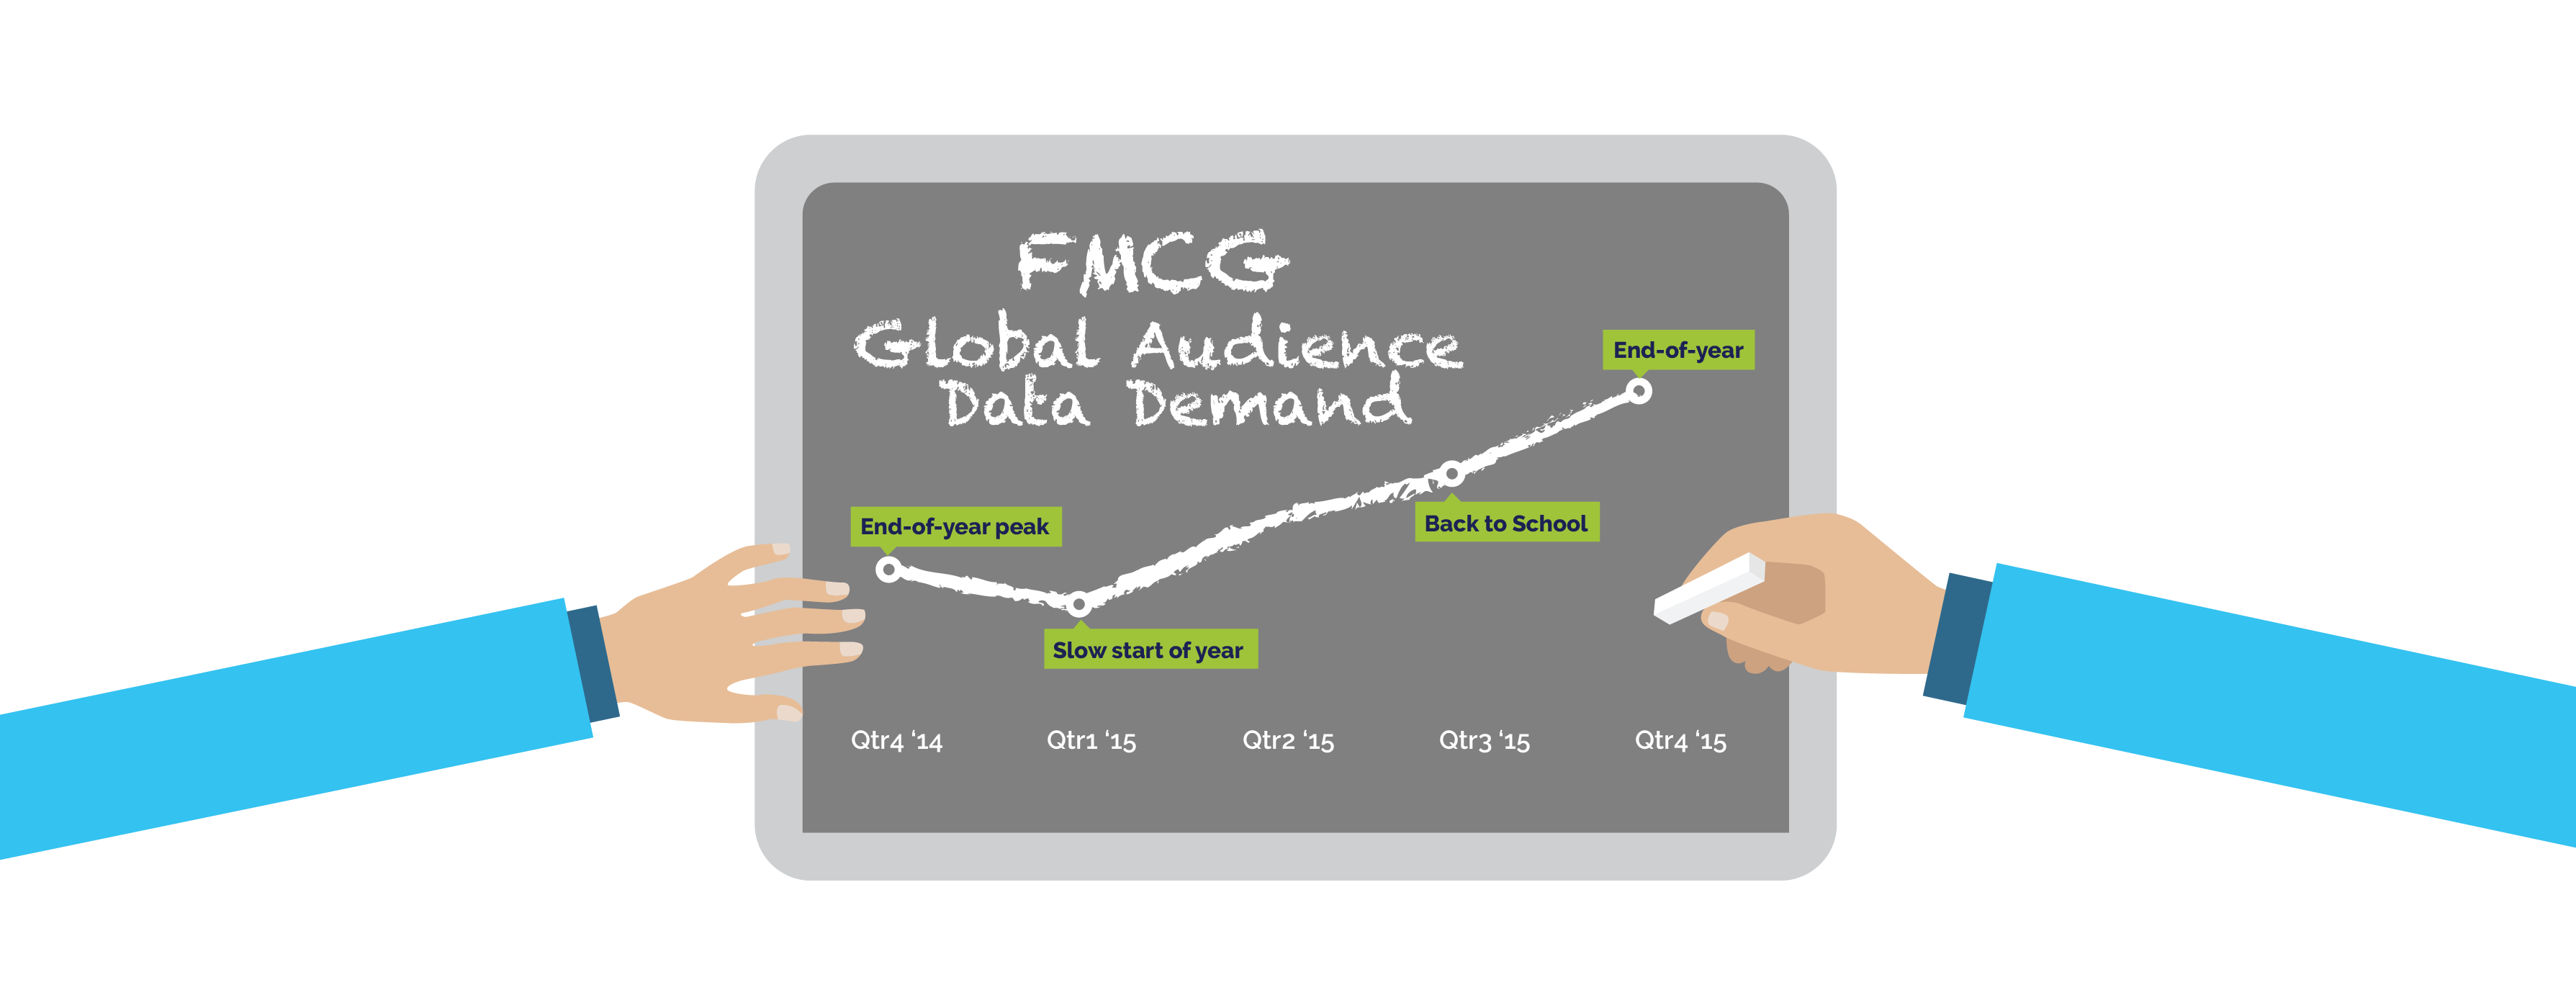 FMCG global audience data demand.png